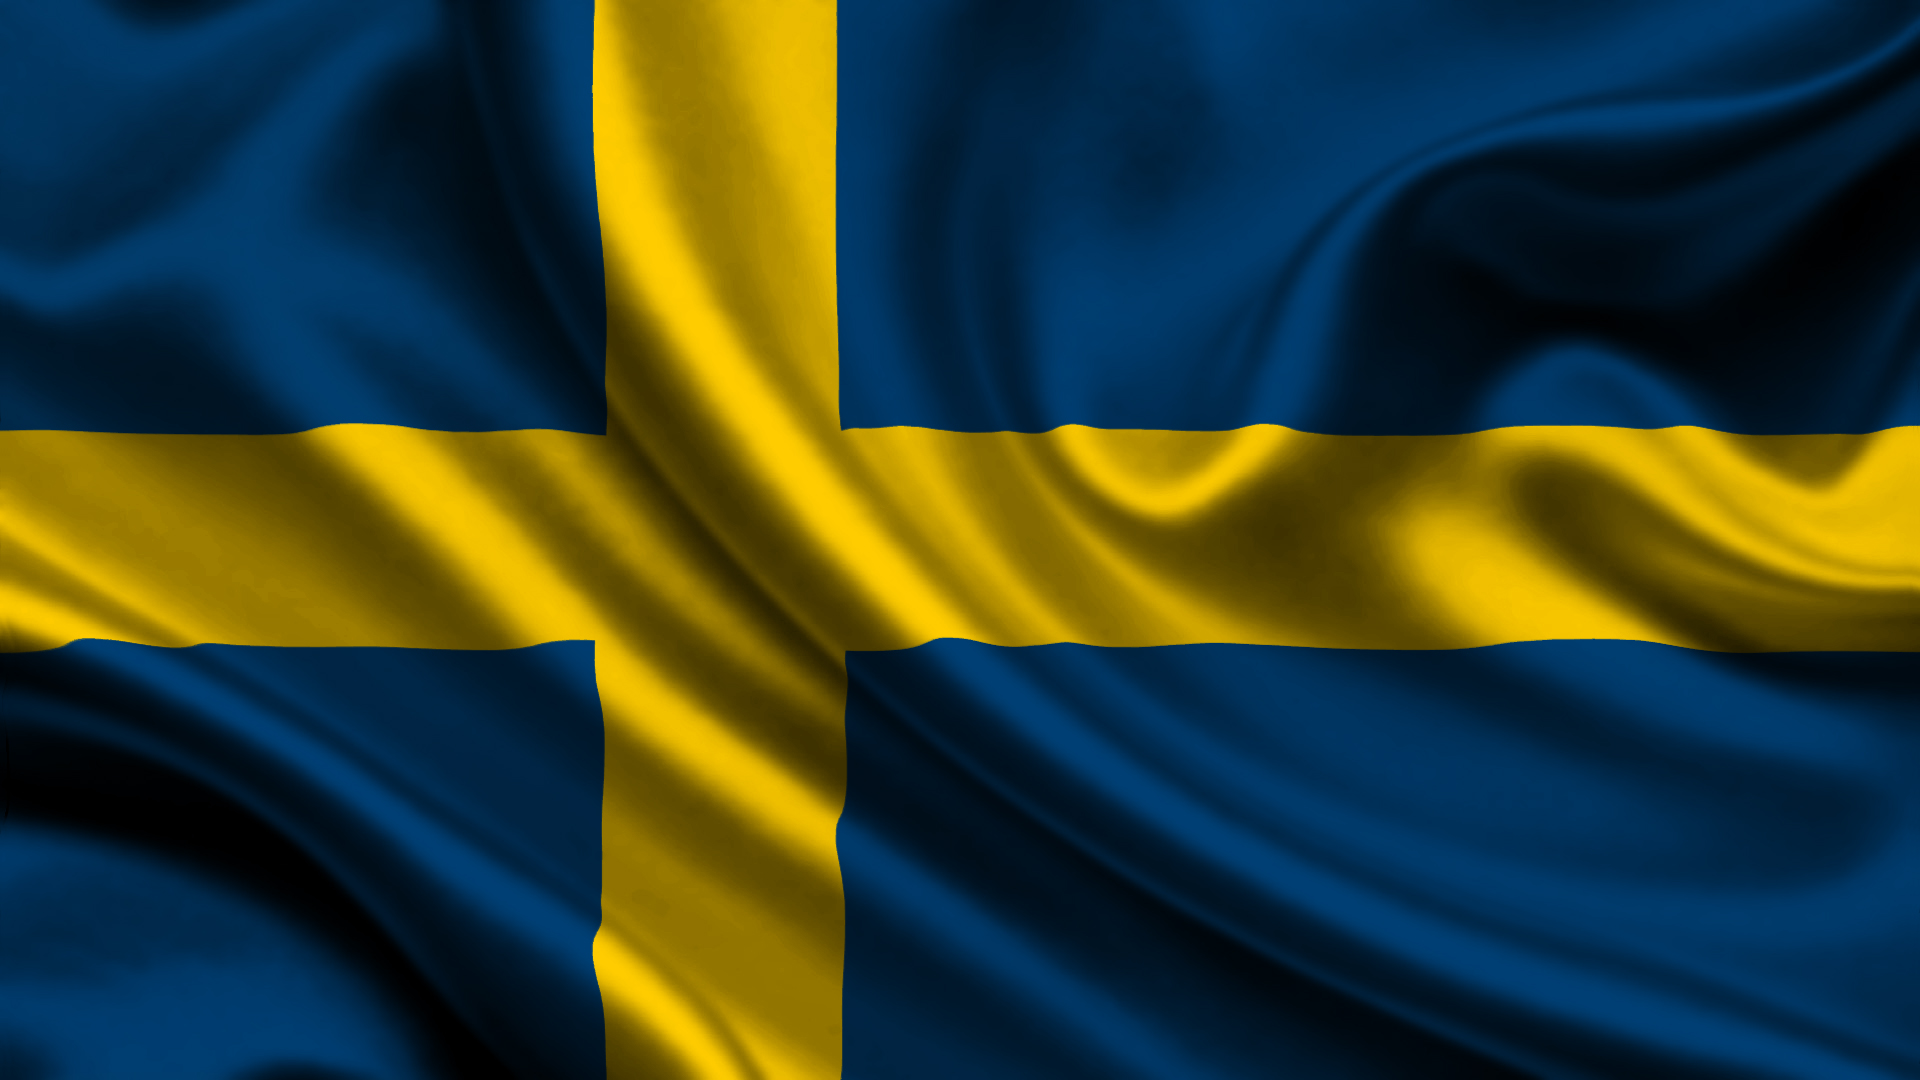 Misc Backgrounds 359388 Sweden Flag Wallpapers by Paul Emmeth 1920x1080